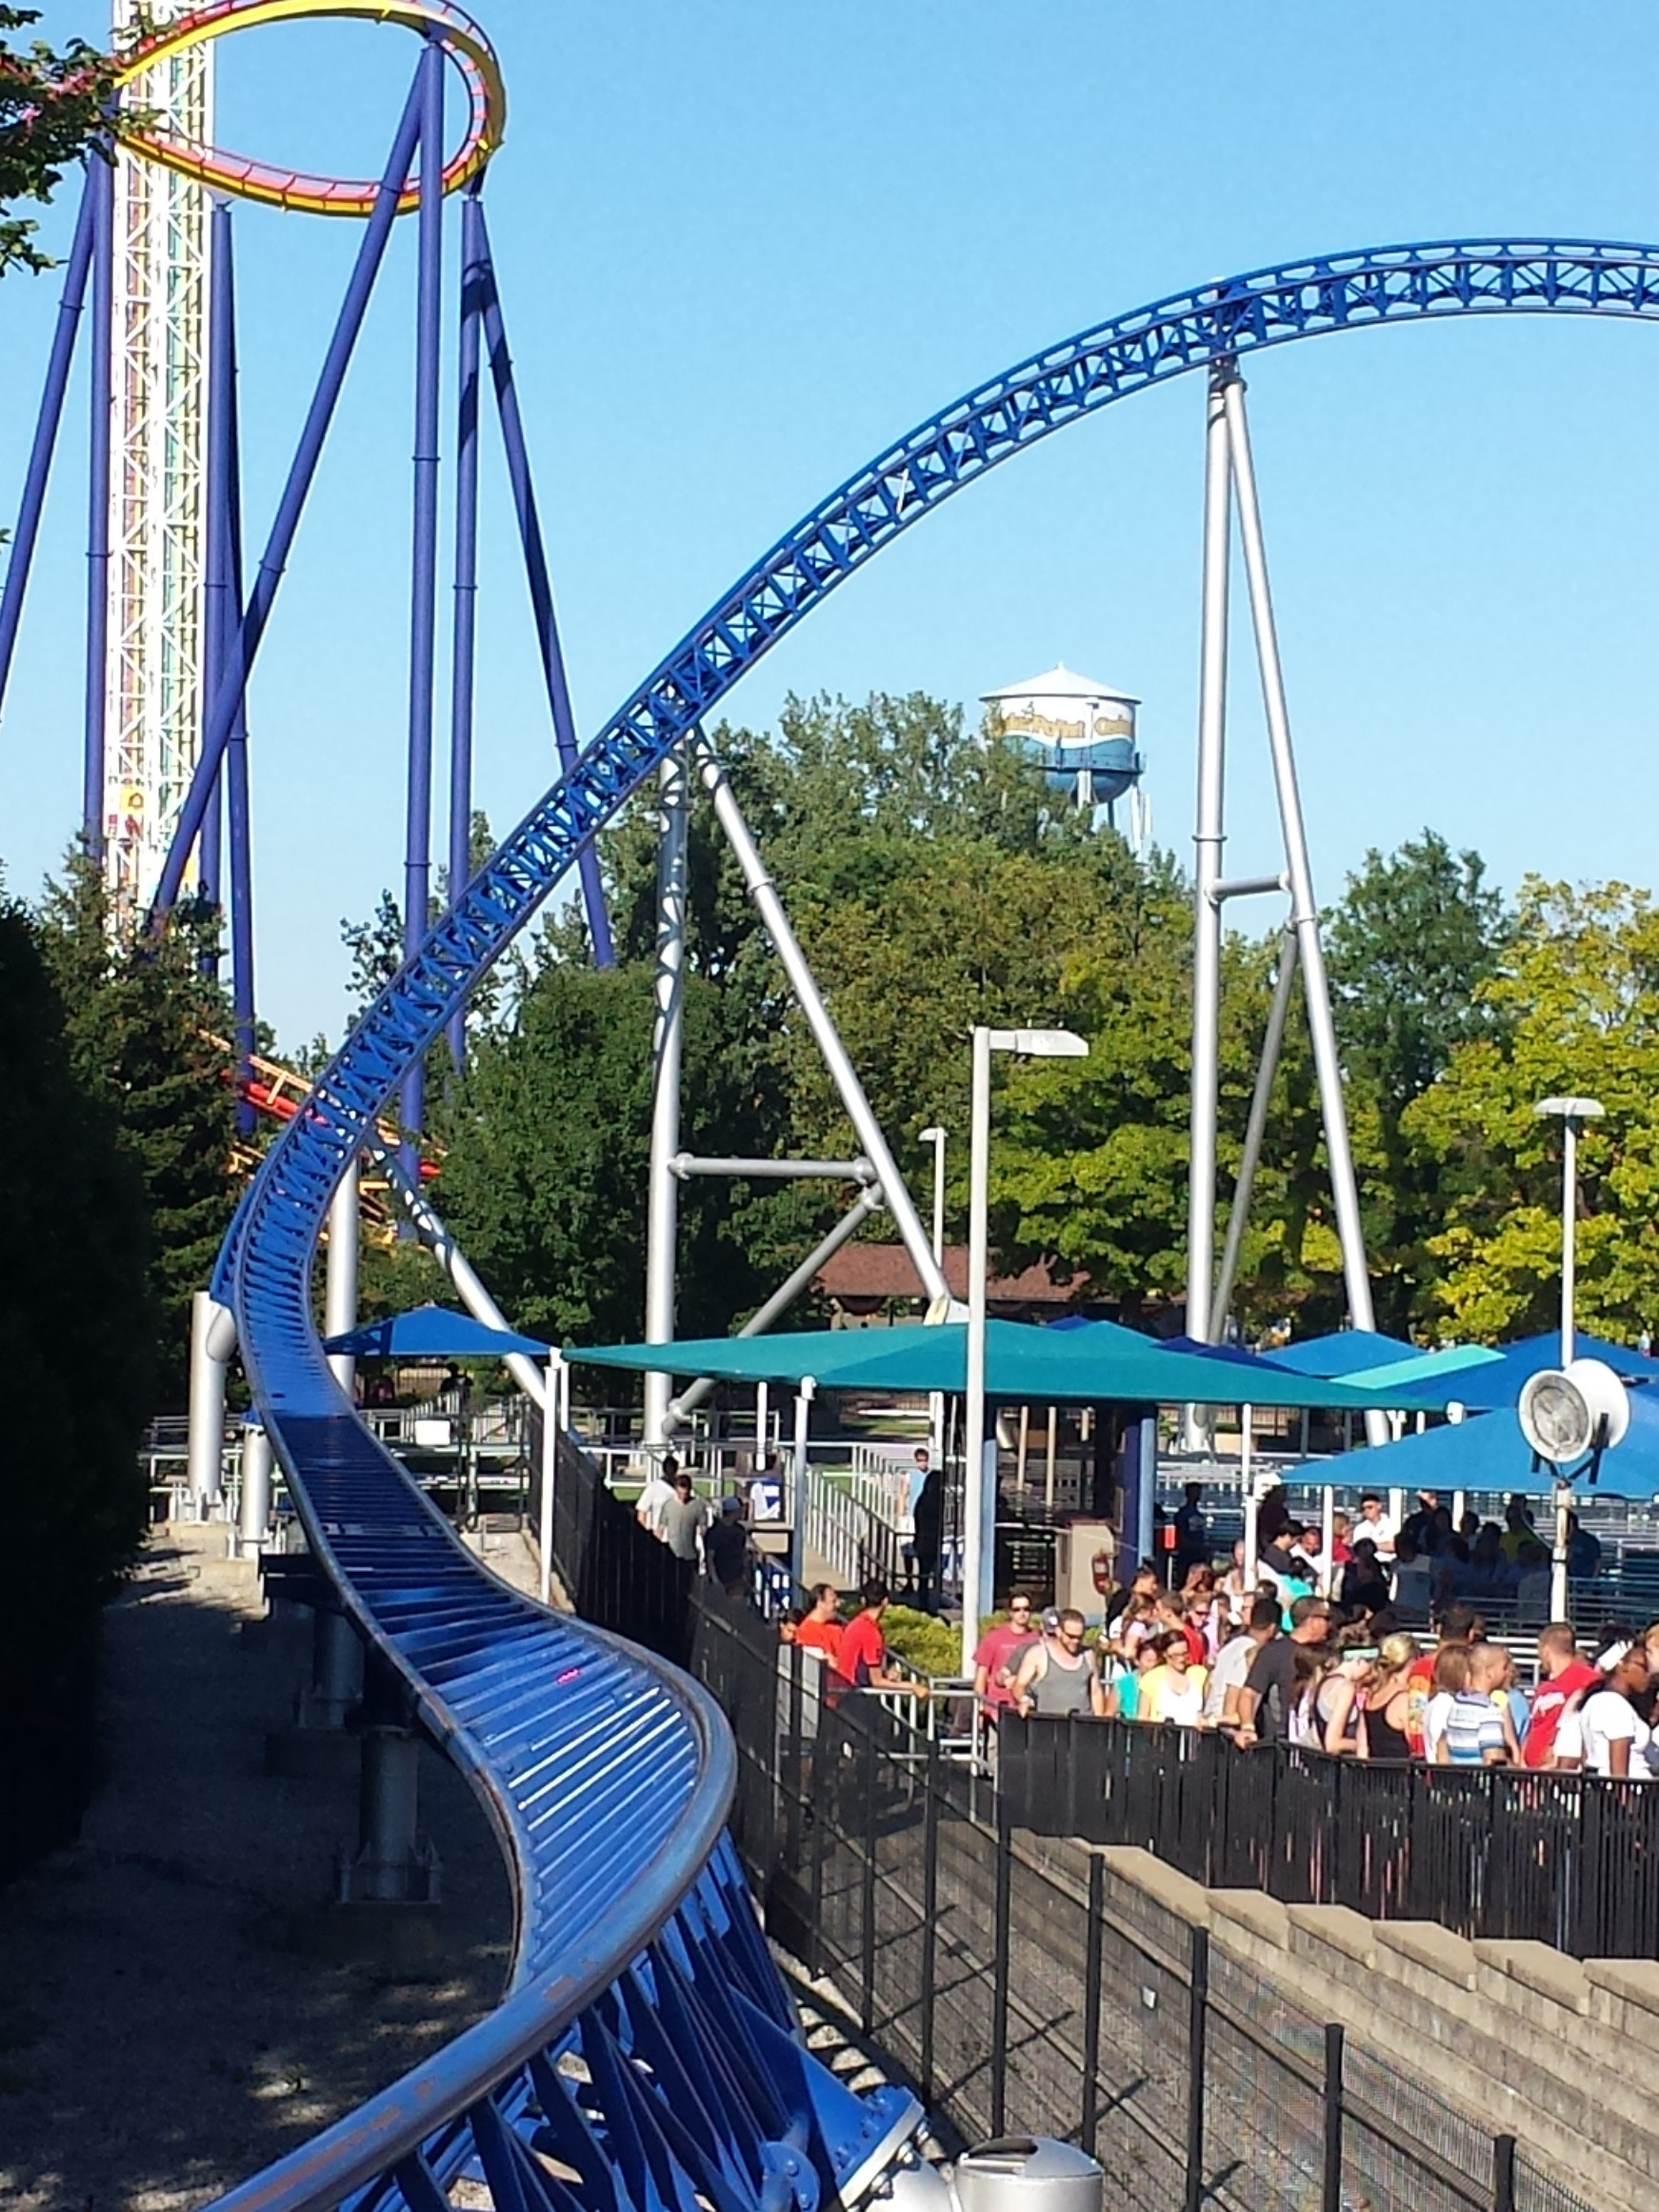 Visitors waiting in line at Cedar Point